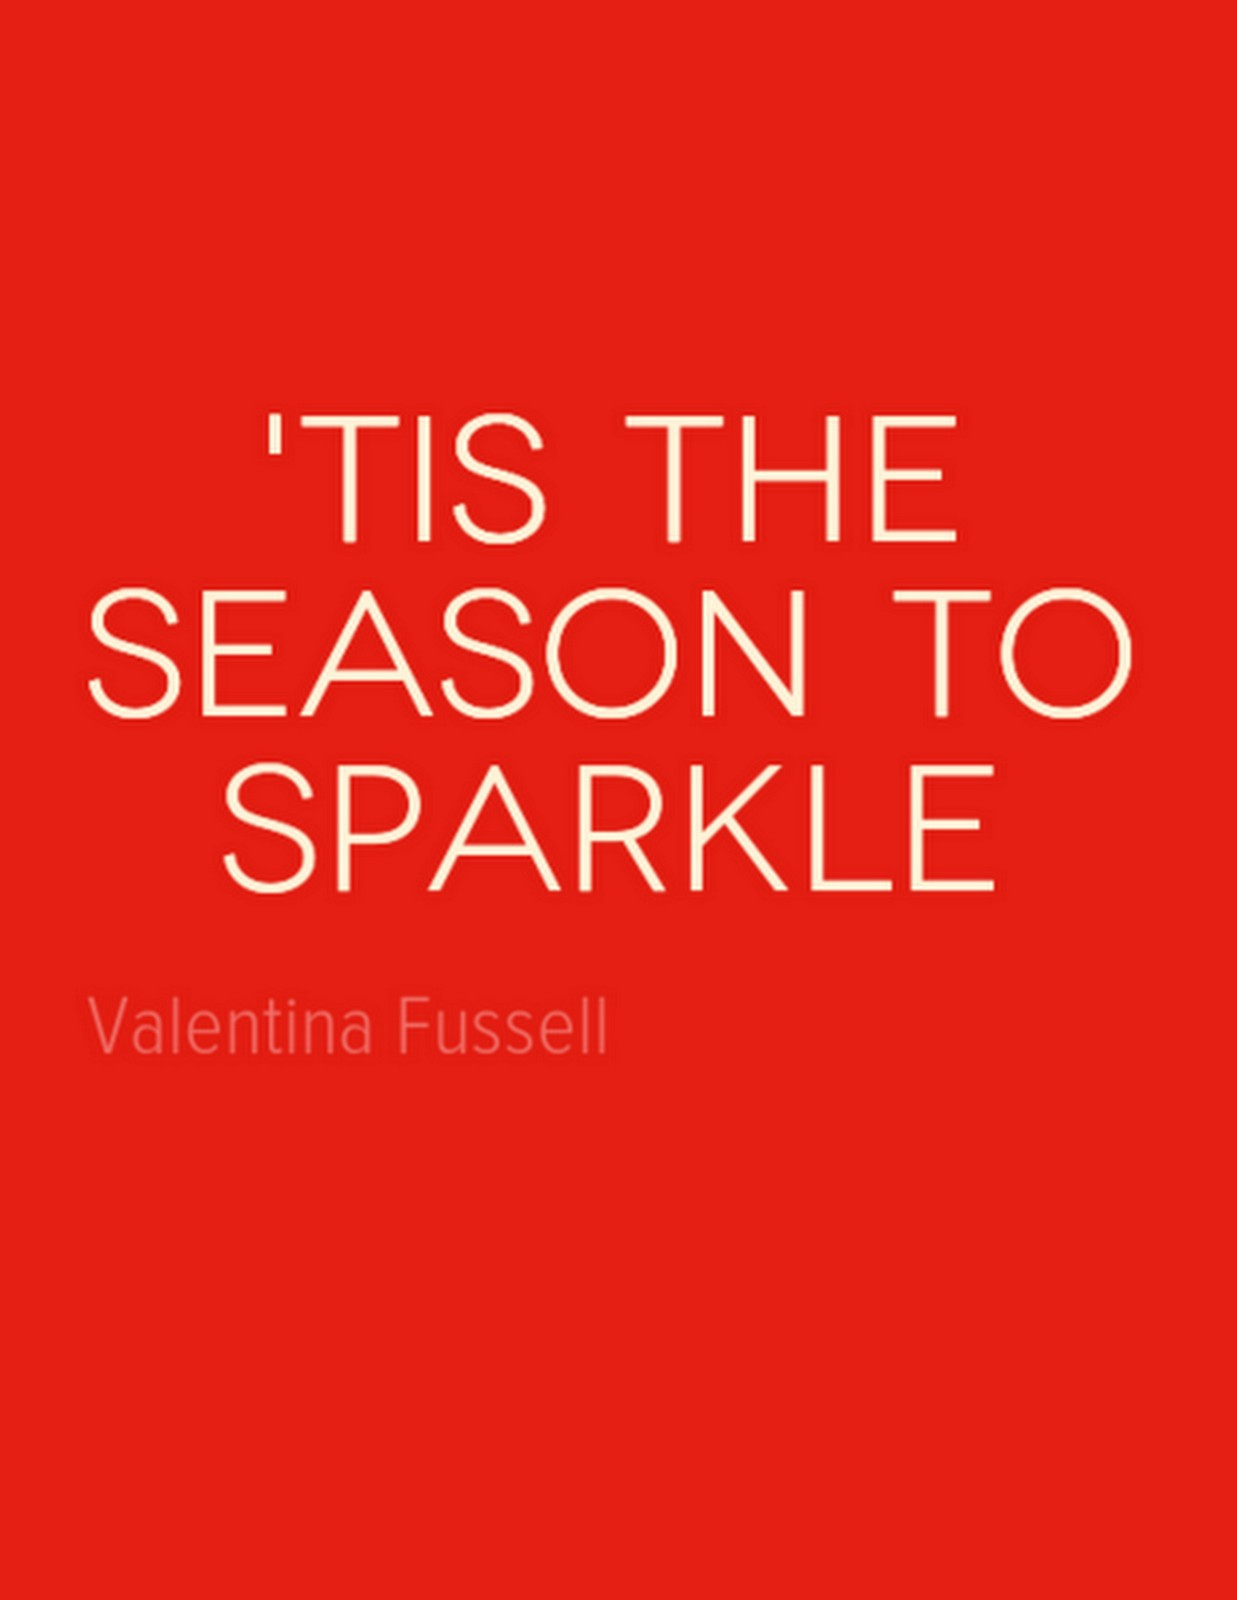 Tis the Season To Sparkle :: Valentina Fussell